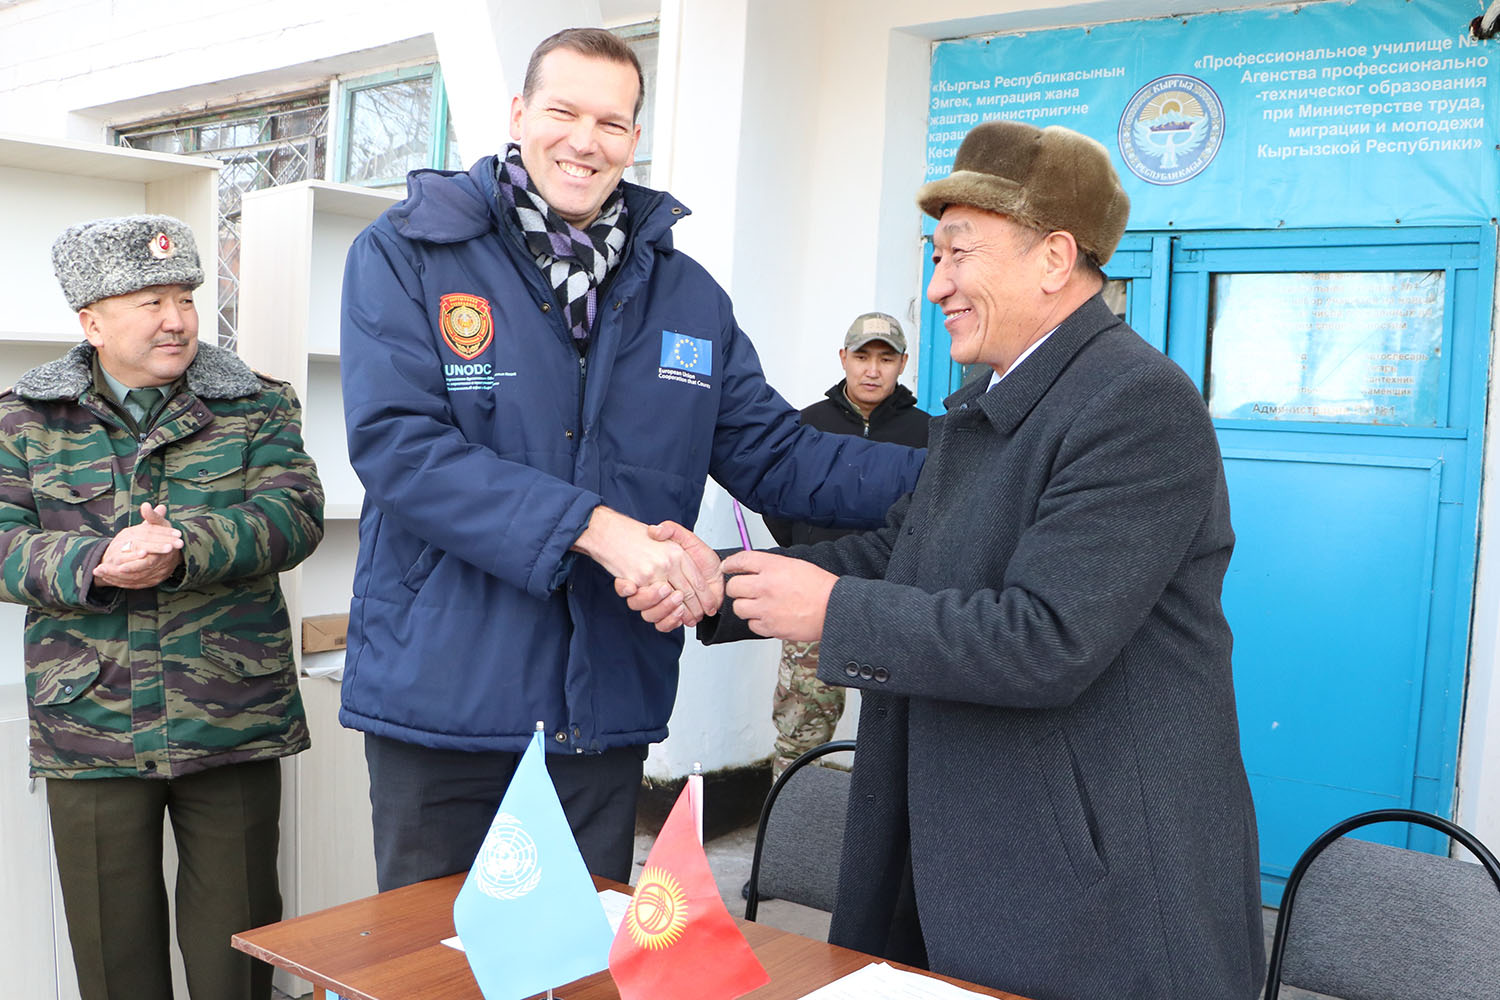 New rehabilitation opportunities for prisoners in Kyrgyzstan